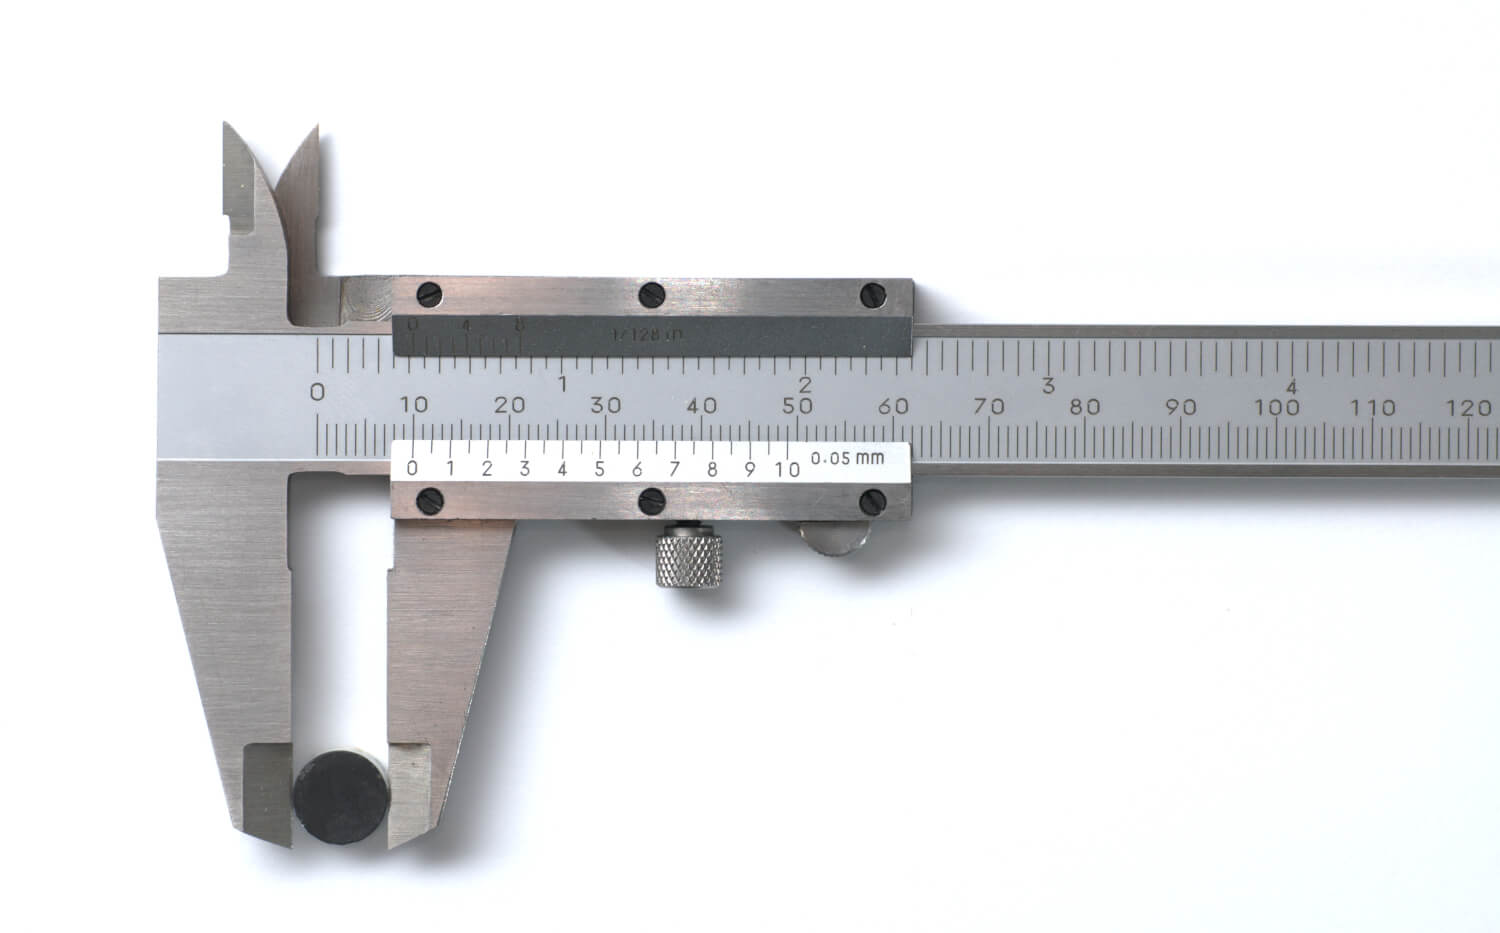 4 Reasons Calipers Fail to Give Accurate Body Fat Results